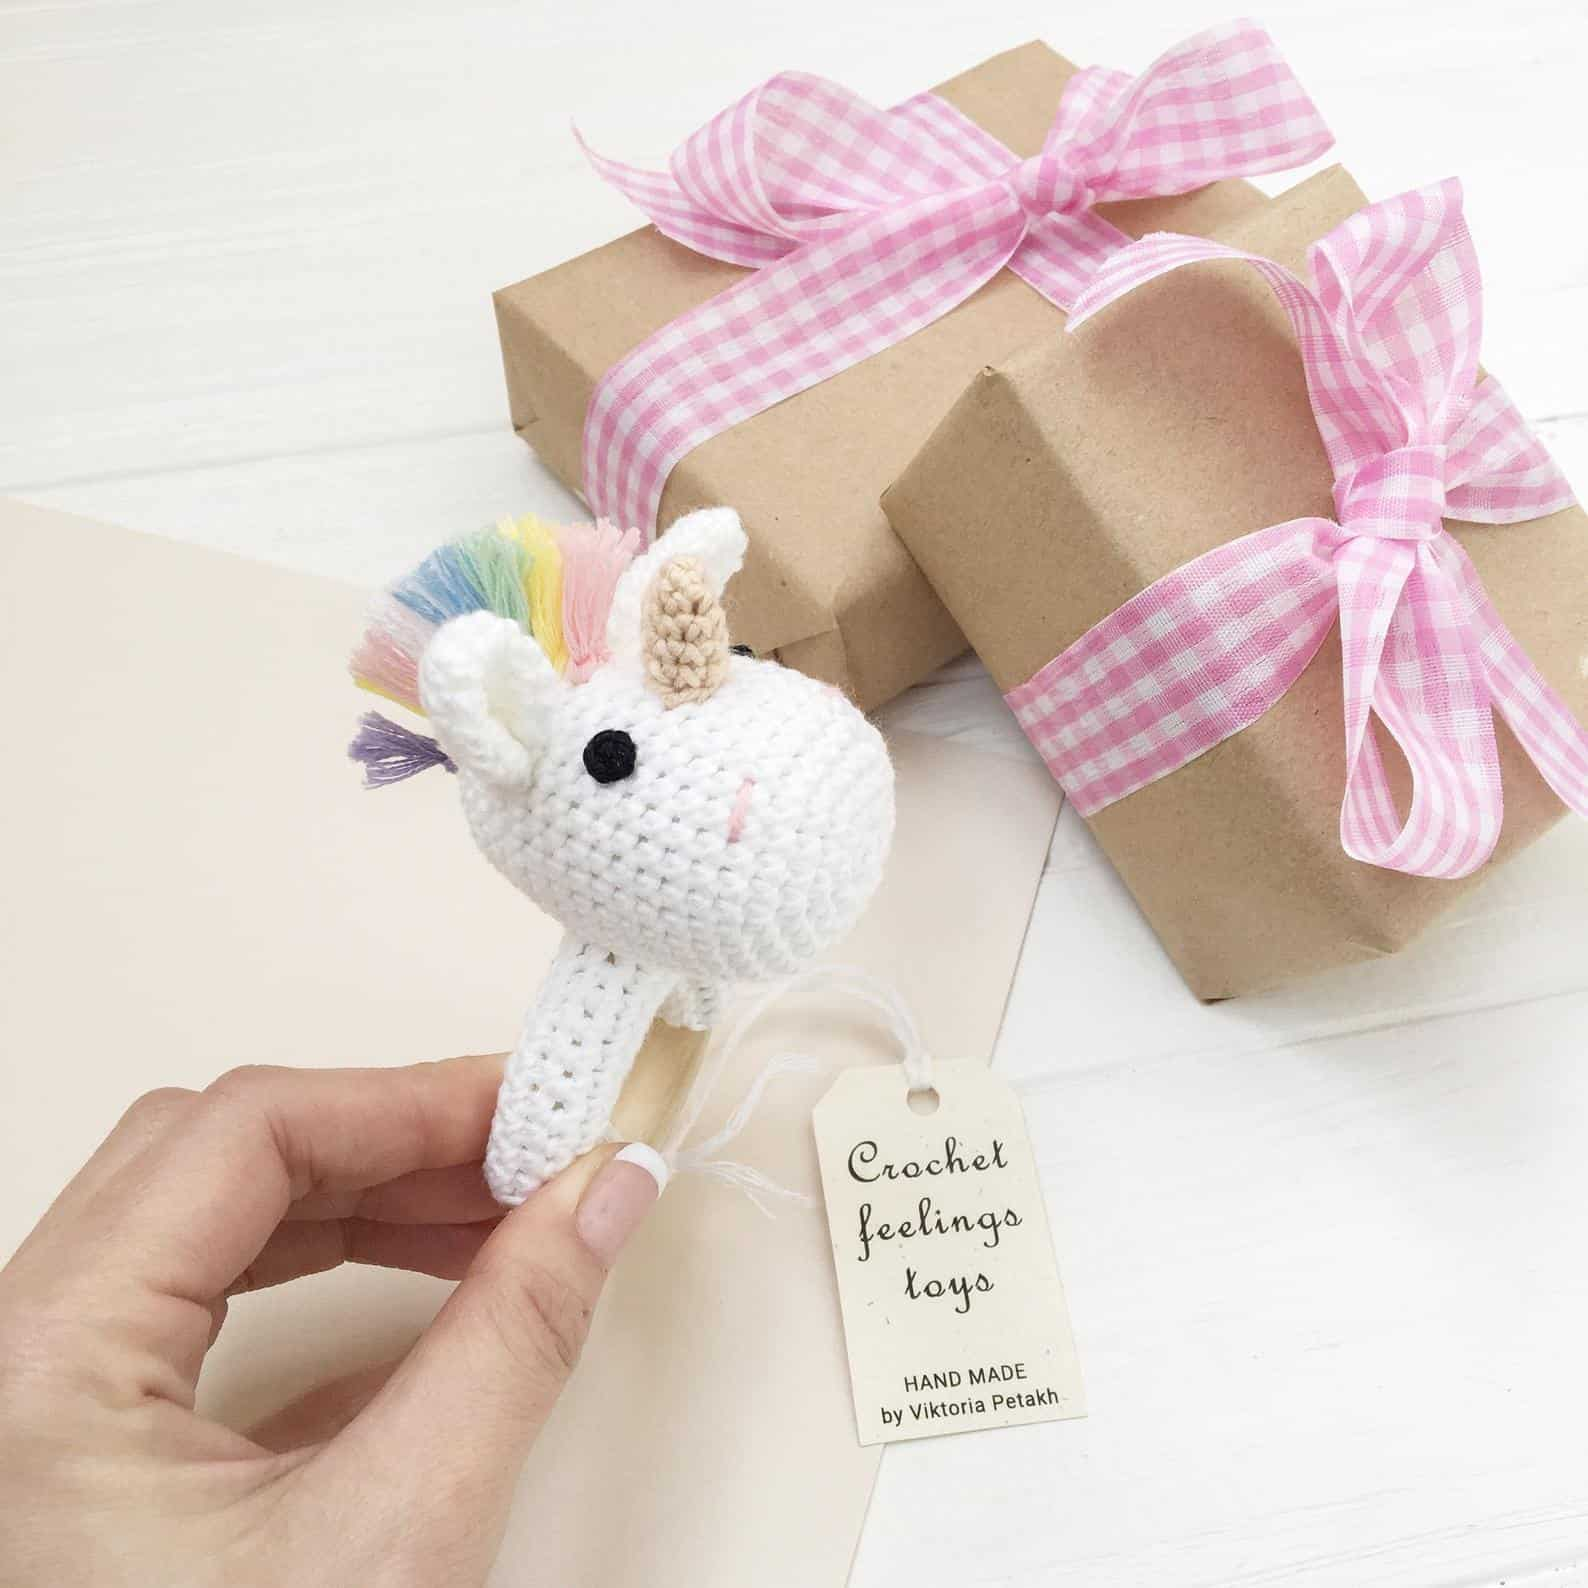 Baby unicorn amigurumi pattern - Amigurumi Today | 1588x1588